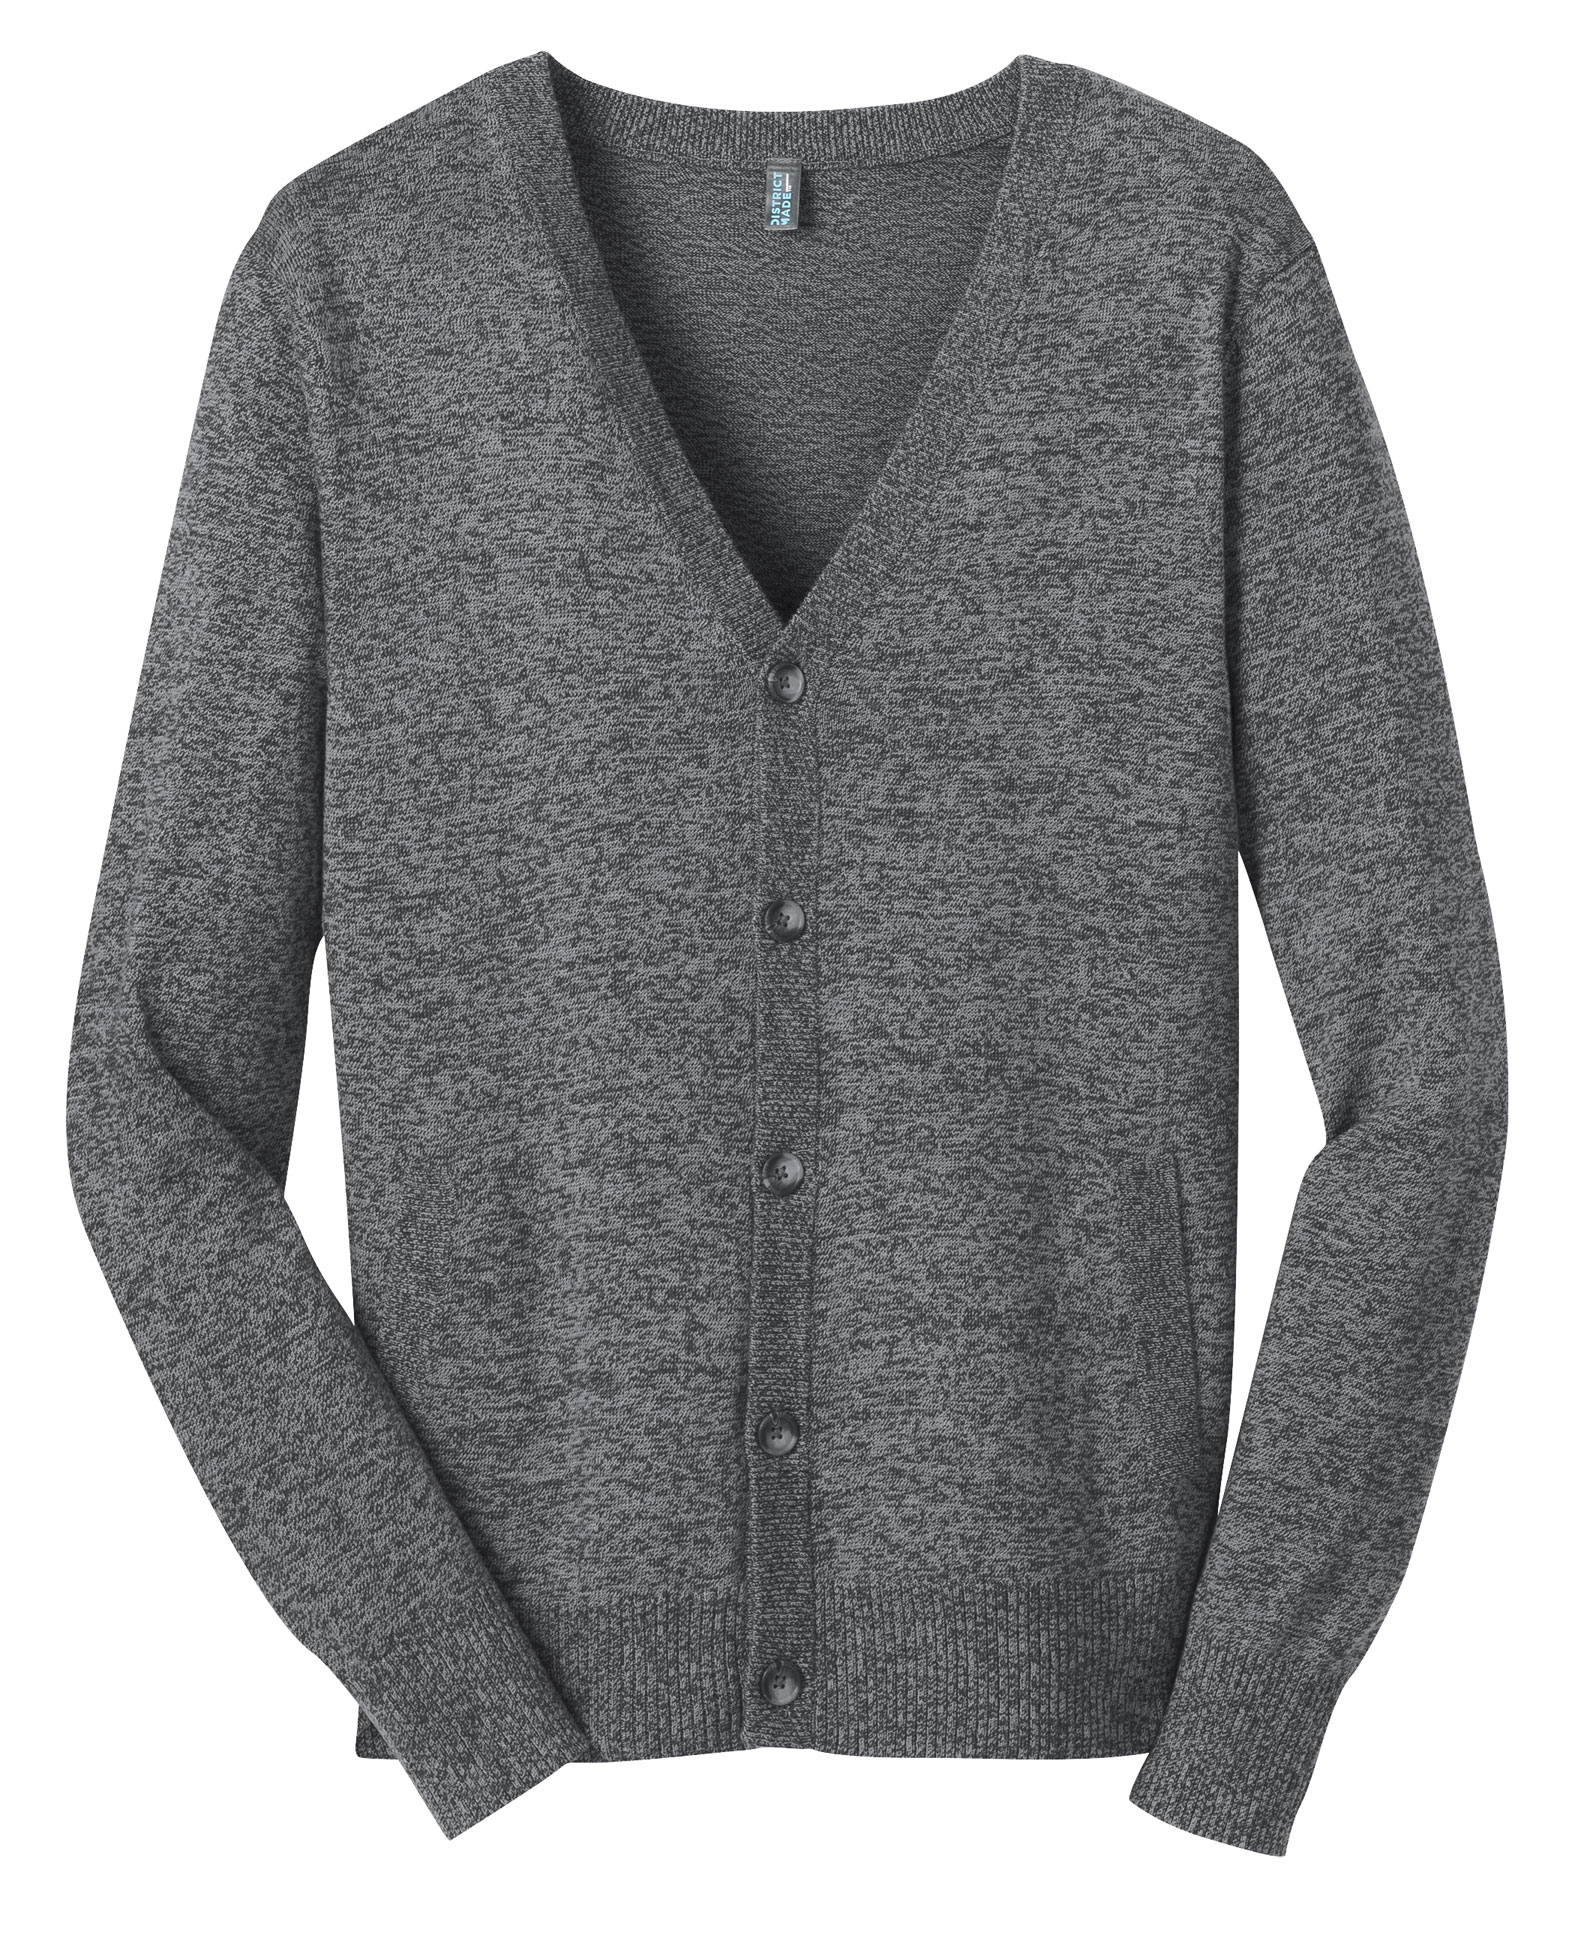 District Made� Mens Cardigan Sweater